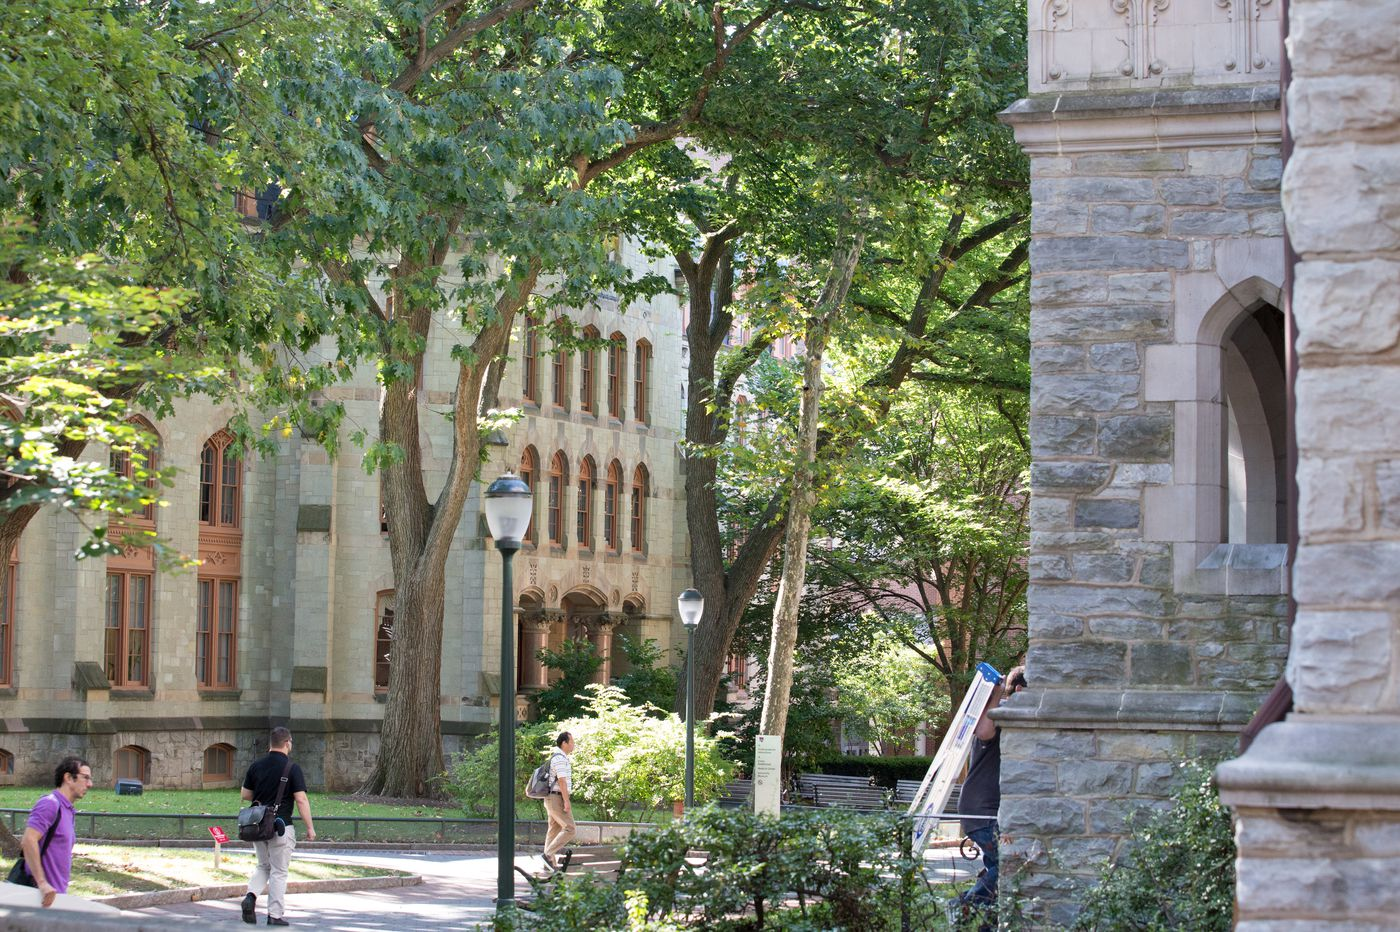 Penn to offer first Ivy League bachelor's degree online